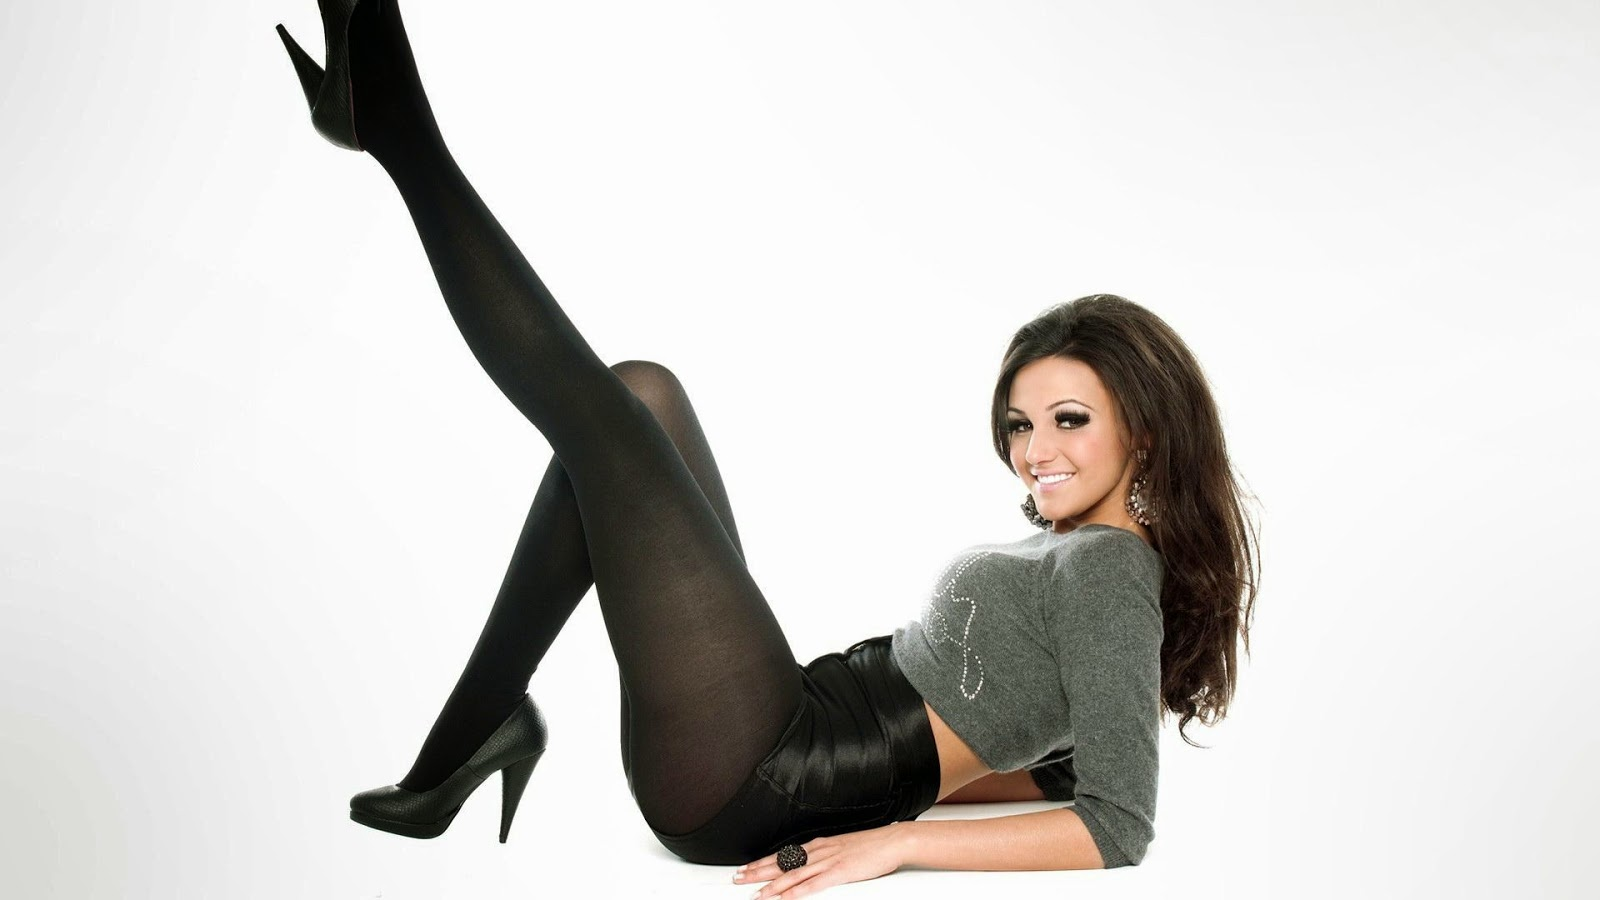 michelle keegan hq wallpapers - photo #46